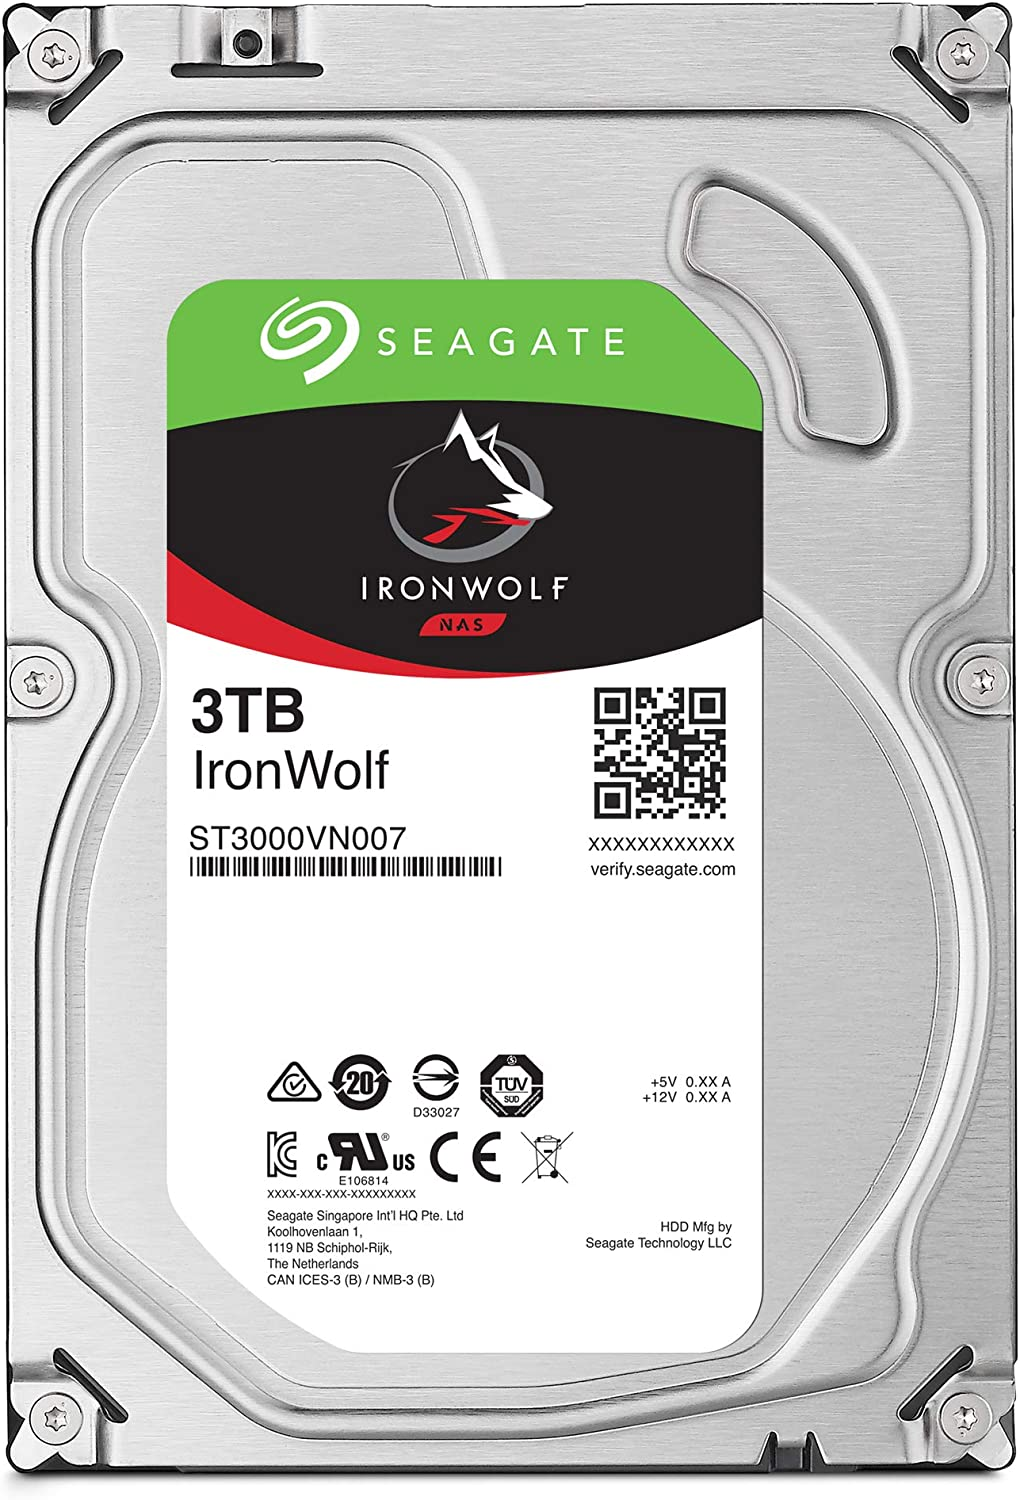 ST8000VN004 3.5 Inch SATA 6Gb//s 7200 RPM 256MB Cache for RAID Network Attached Storage Seagate IronWolf 8TB NAS Internal Hard Drive HDD Frustration Free Packaging